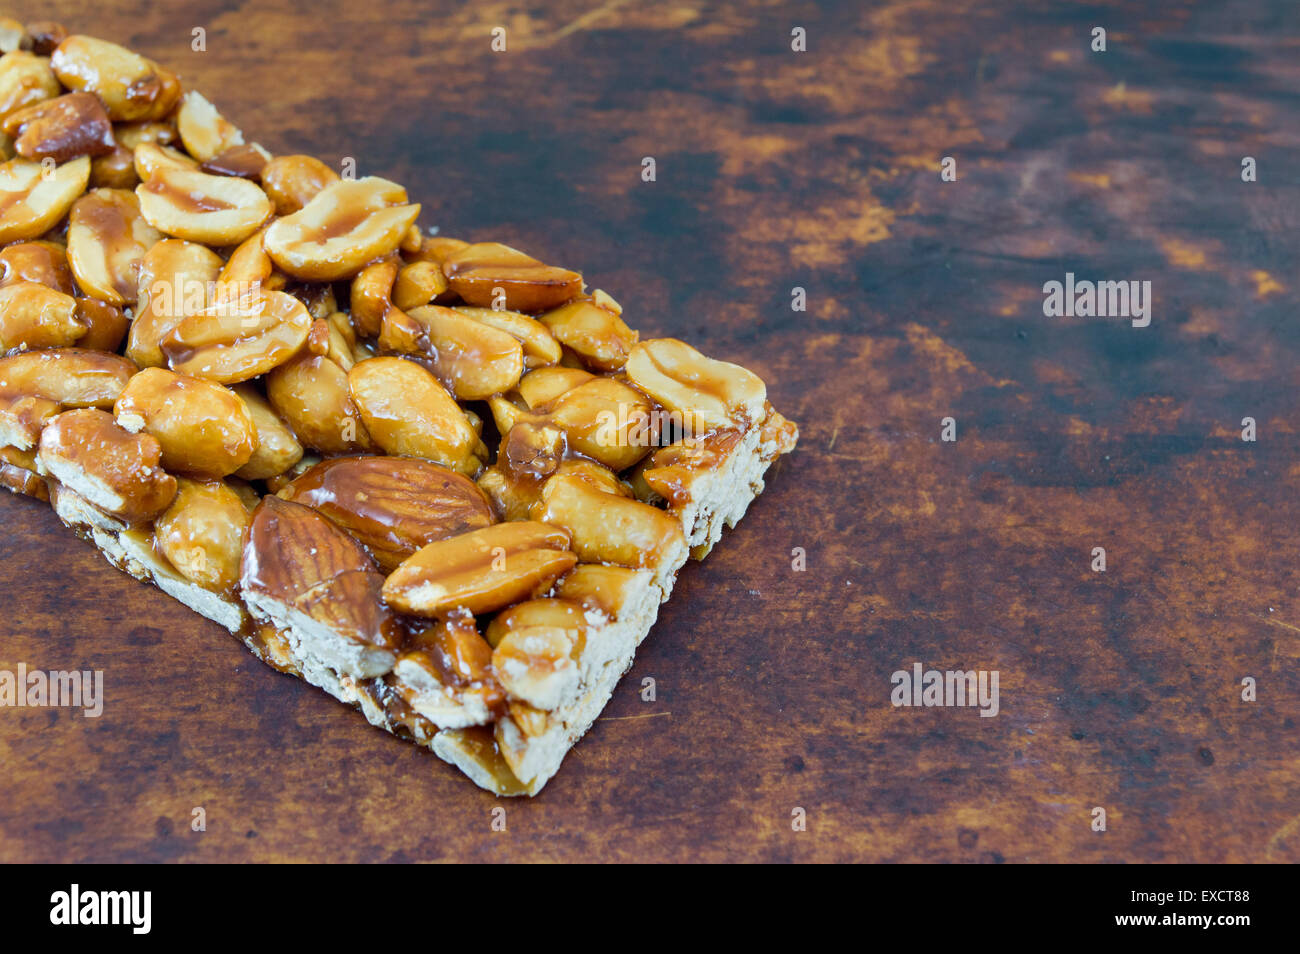 Honey bar with peanuts almonds and hazelnuts on a brown wooden board - Stock Image